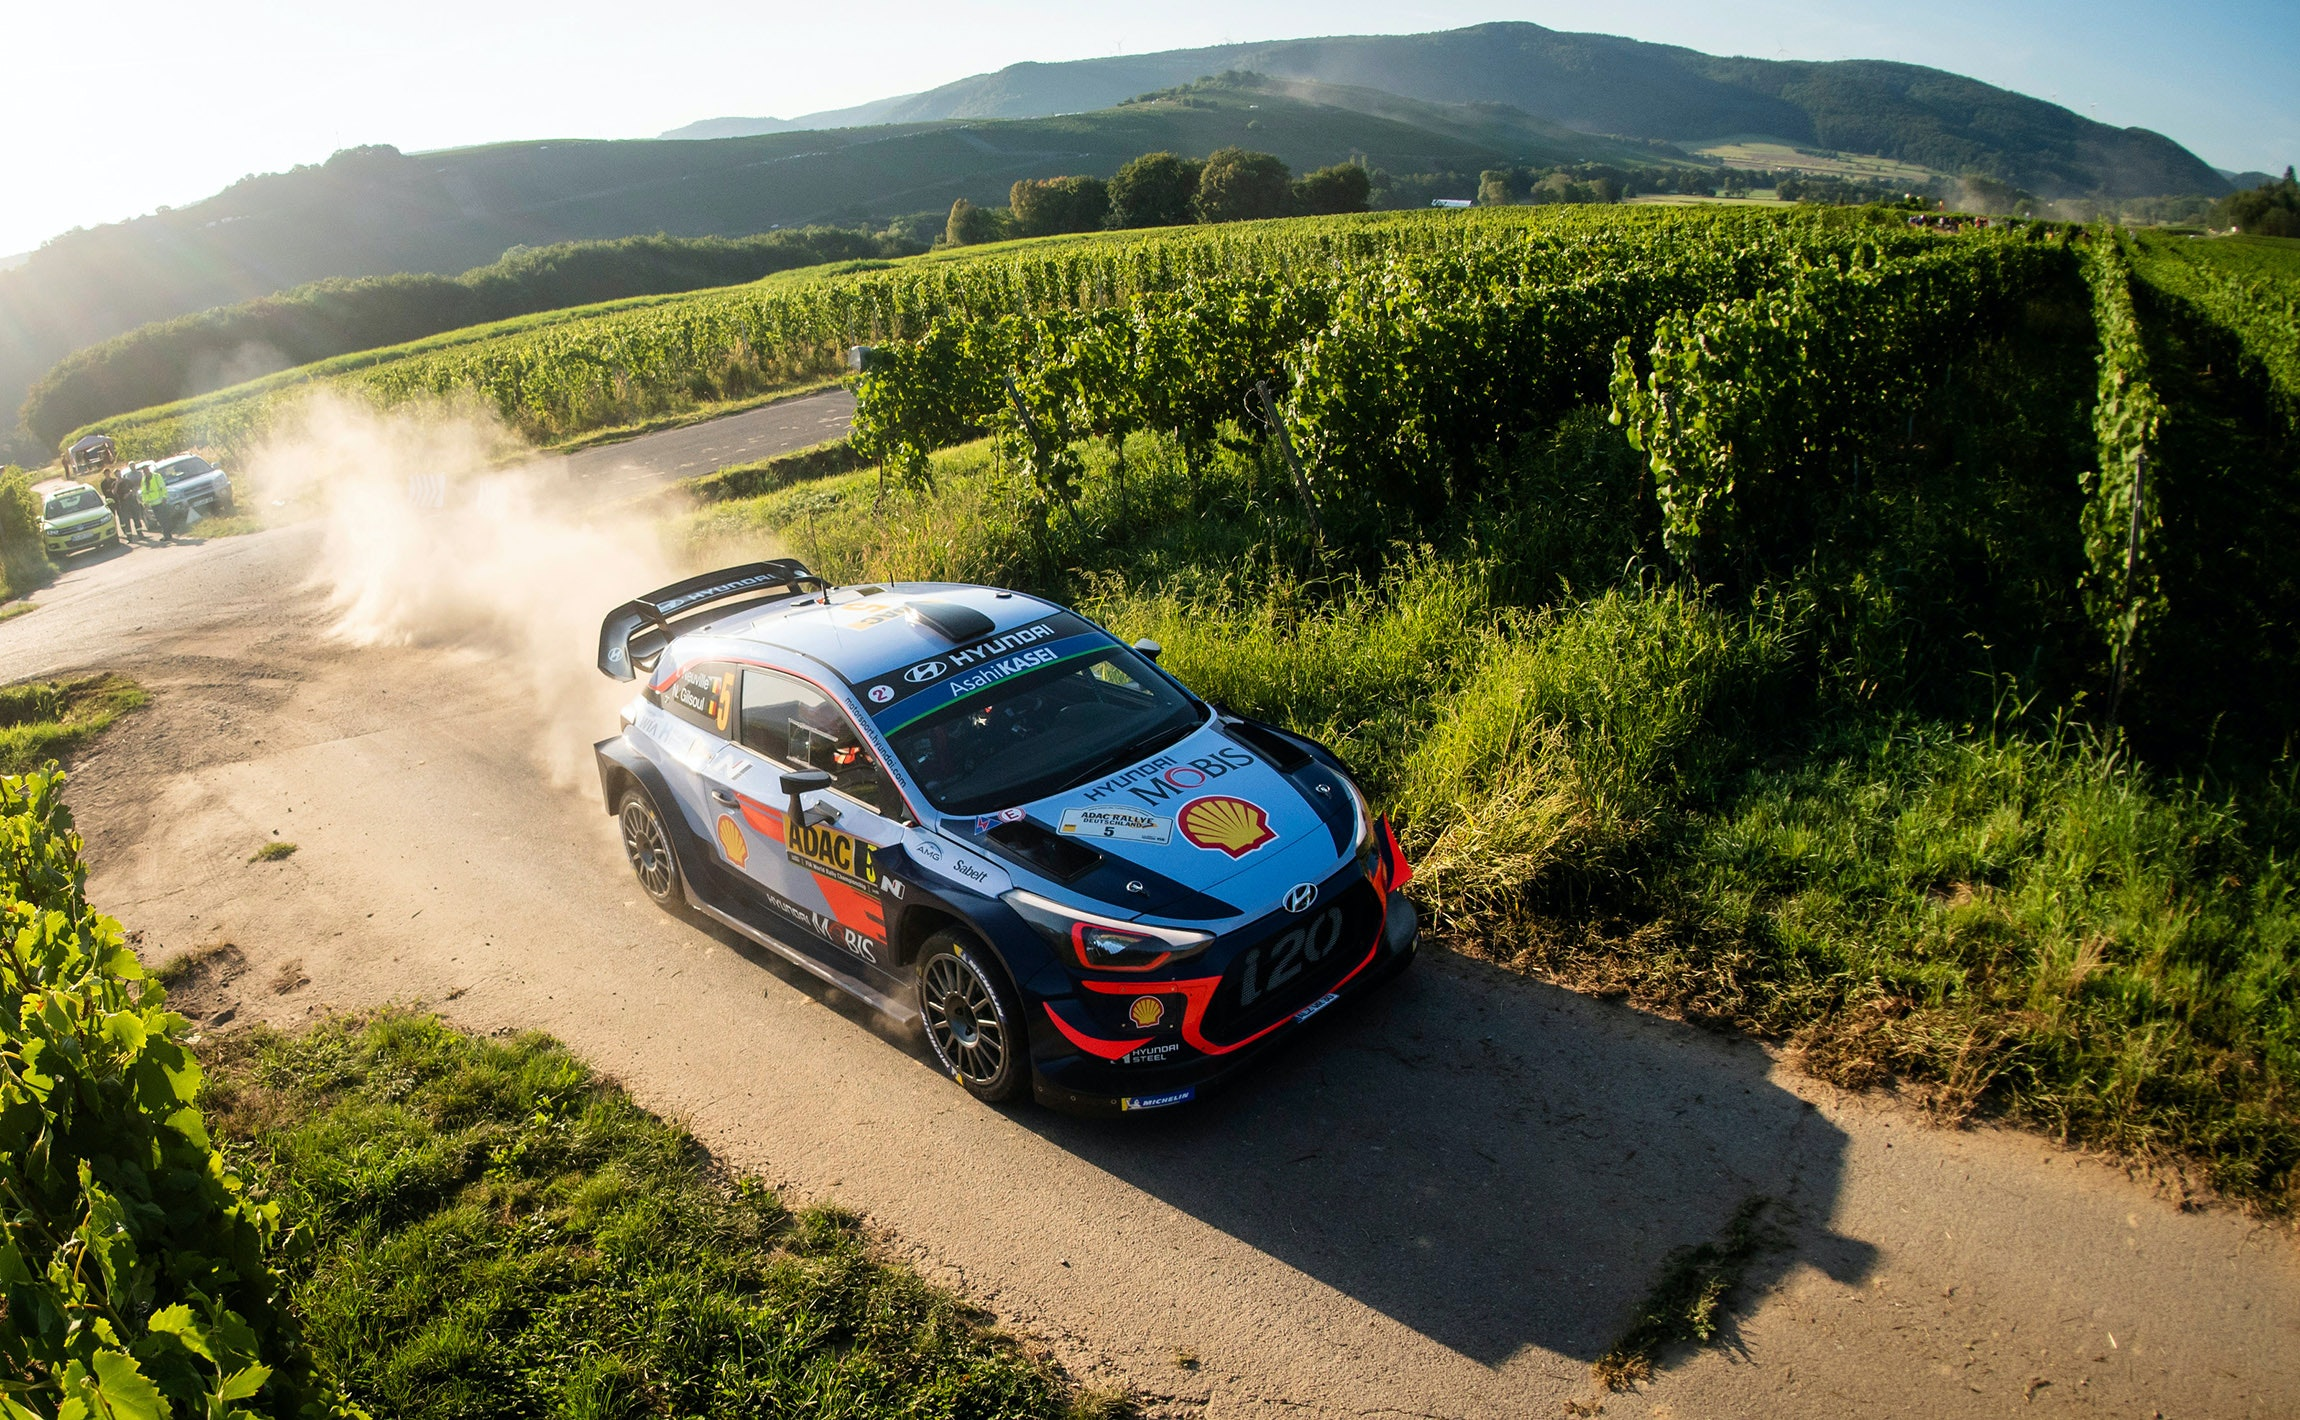 Thierry Neuville (BEL) performs during FIA World Rally Championship 2018 in Saarland, Germany on August 19, 2018 // Jaanus Ree/Red Bull Content Pool // AP-1WMVRZKUD2111 // Usage for editorial use only // Please go to www.redbullcontentpool.com for further information. //